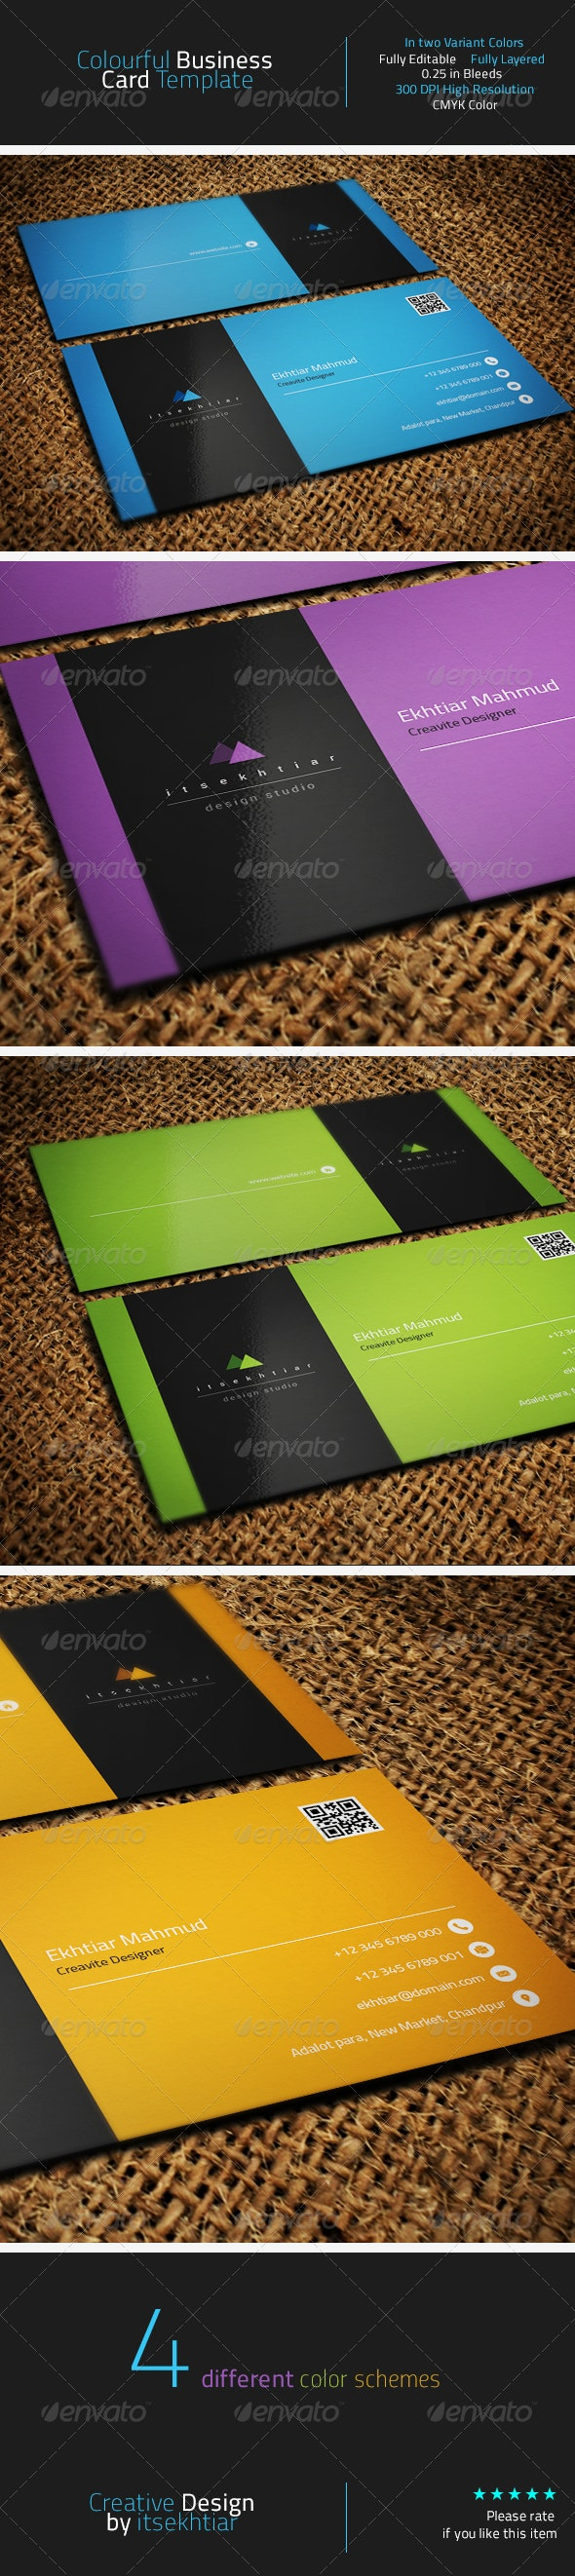 Colourful Business Card Template - Corporate Business Cards